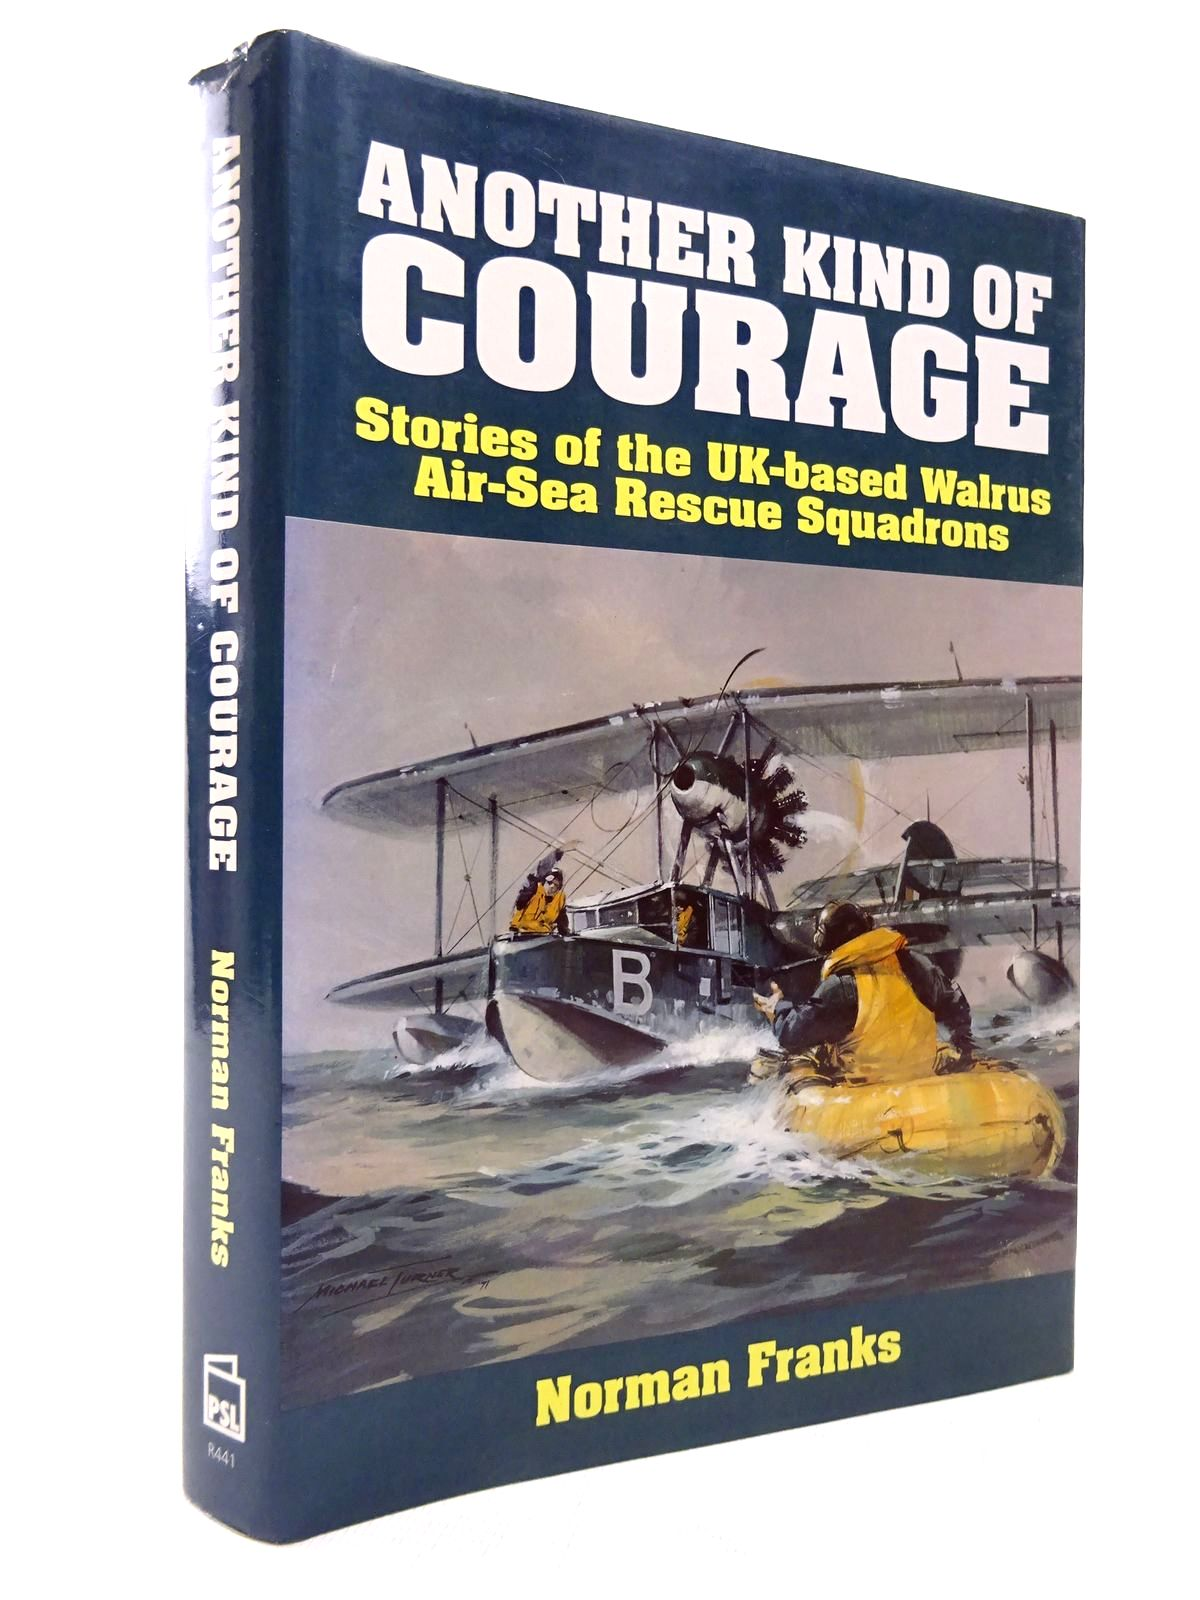 Photo of ANOTHER KIND OF COURAGE: STORIES OF THE UK-BASED WALRUS AIR-SEA RESCUE SQUADRONS written by Franks, Norman L.R. published by Patrick Stephens Limited (STOCK CODE: 1815801)  for sale by Stella & Rose's Books